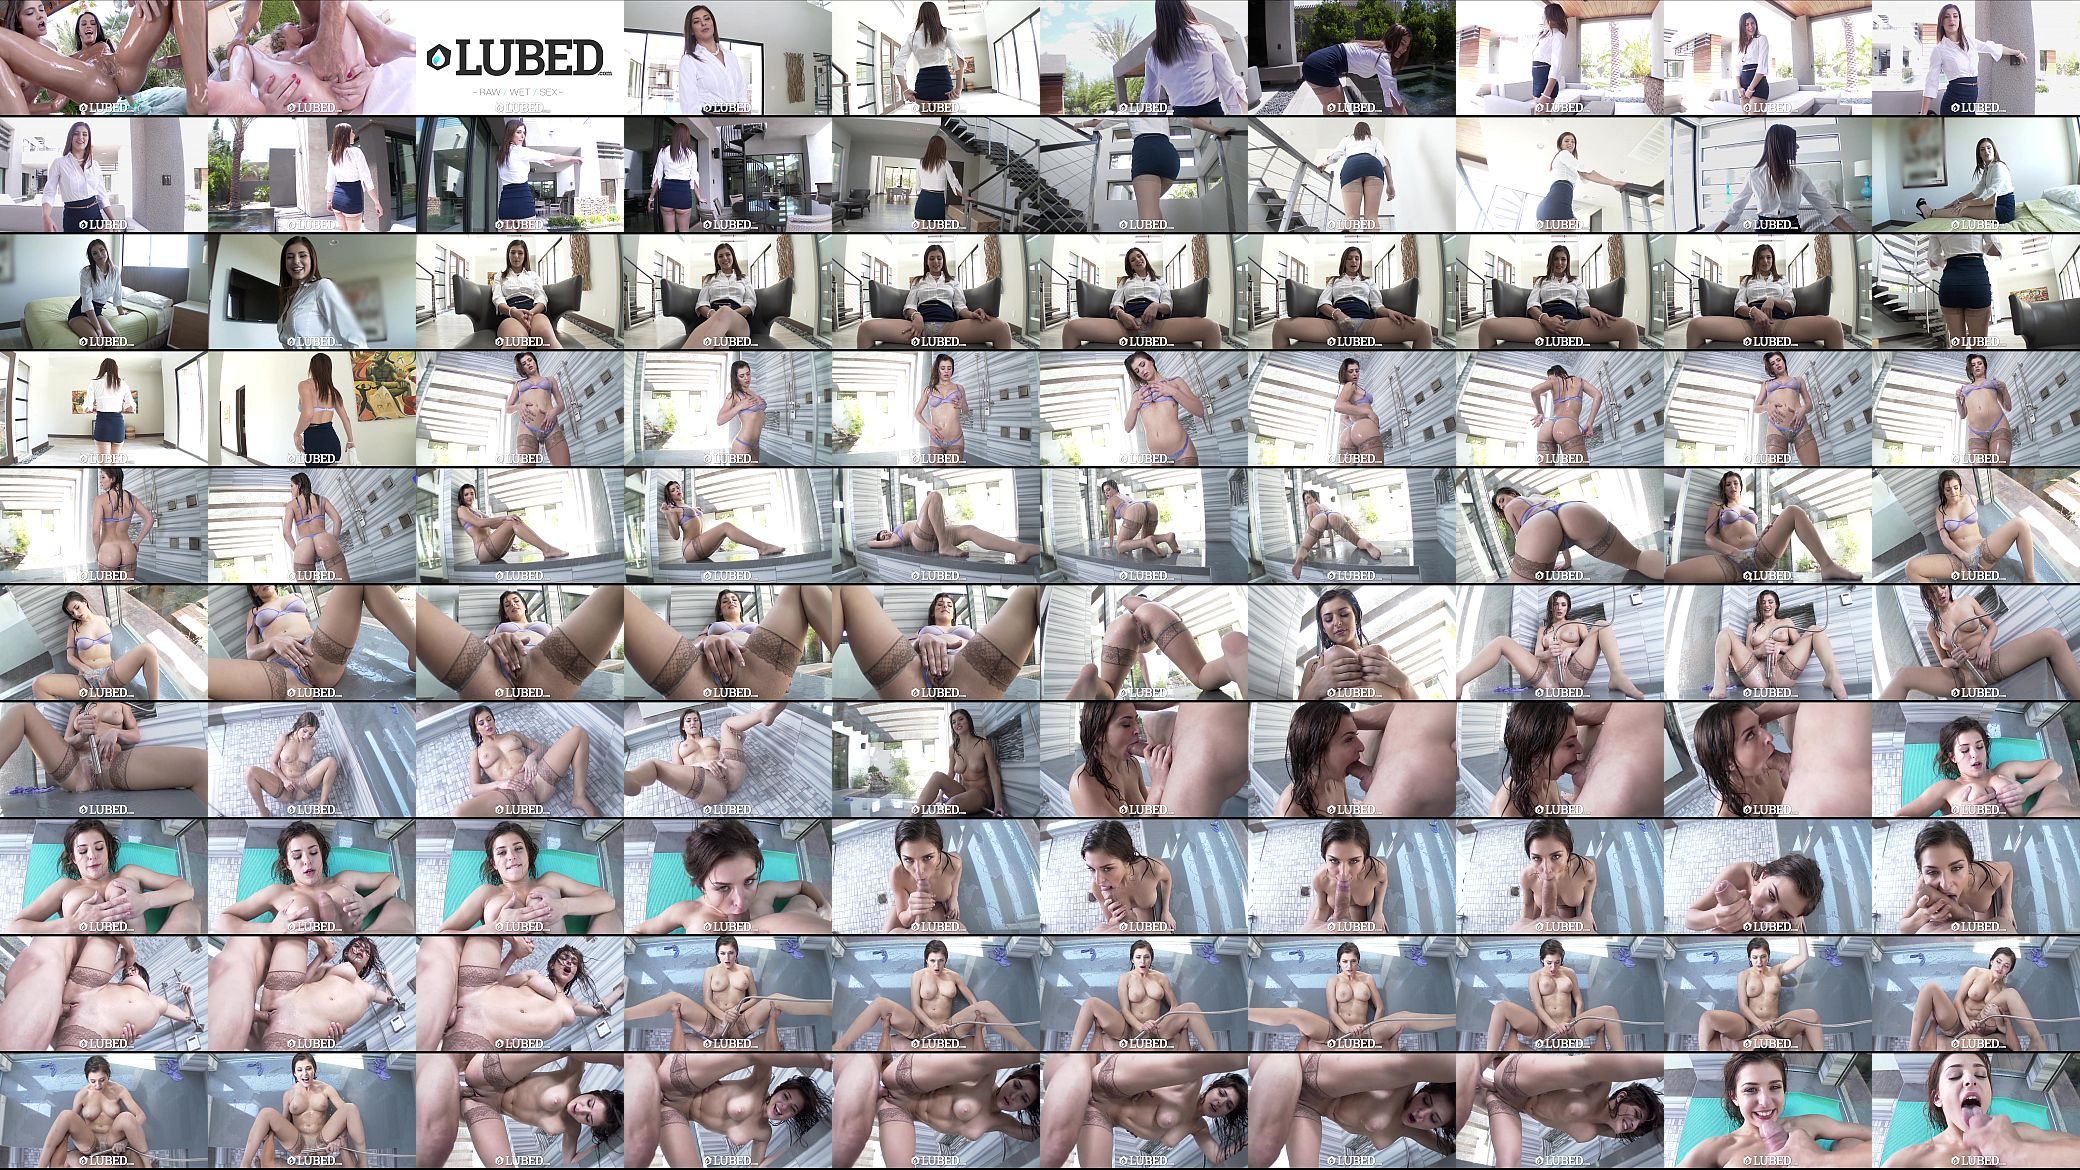 Lubed real estate agent leah gotti fucks in 60fps 10